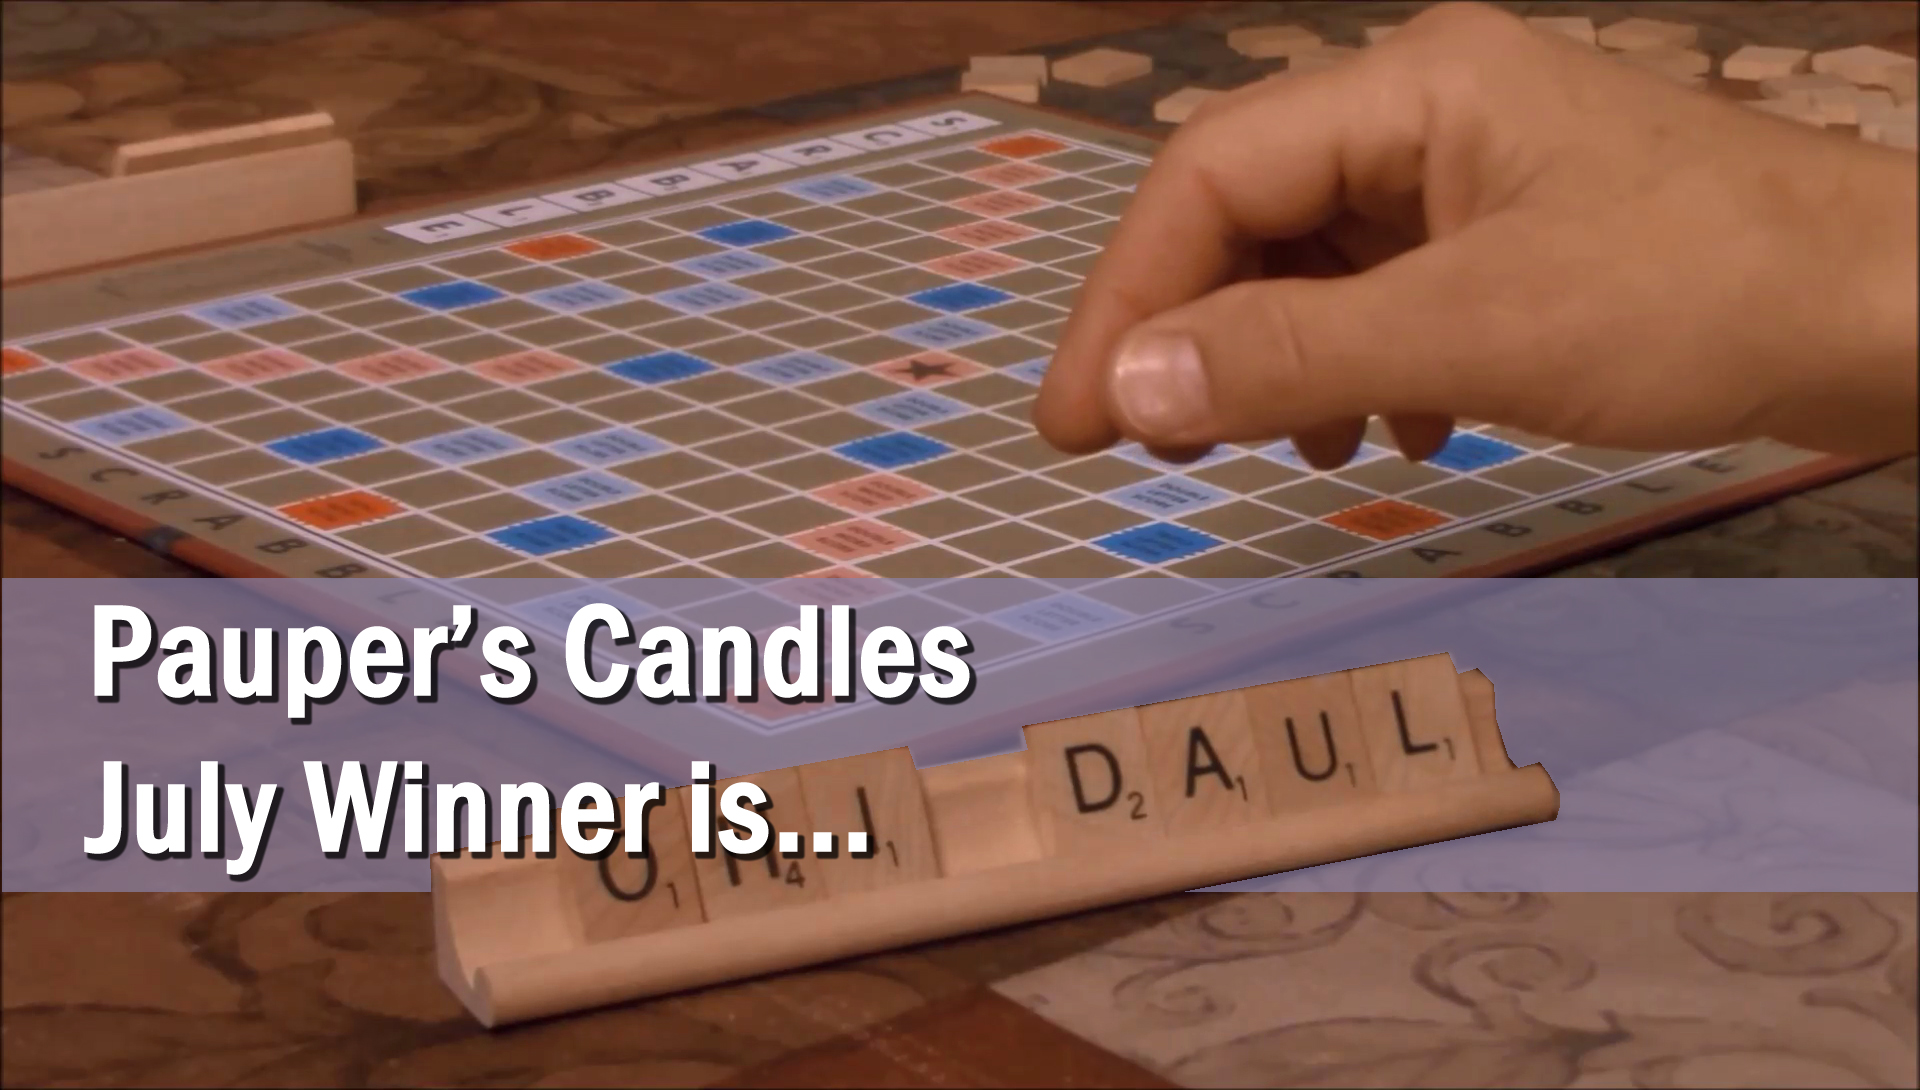 Pauper's Candles July Candle Give-Away Winner!!